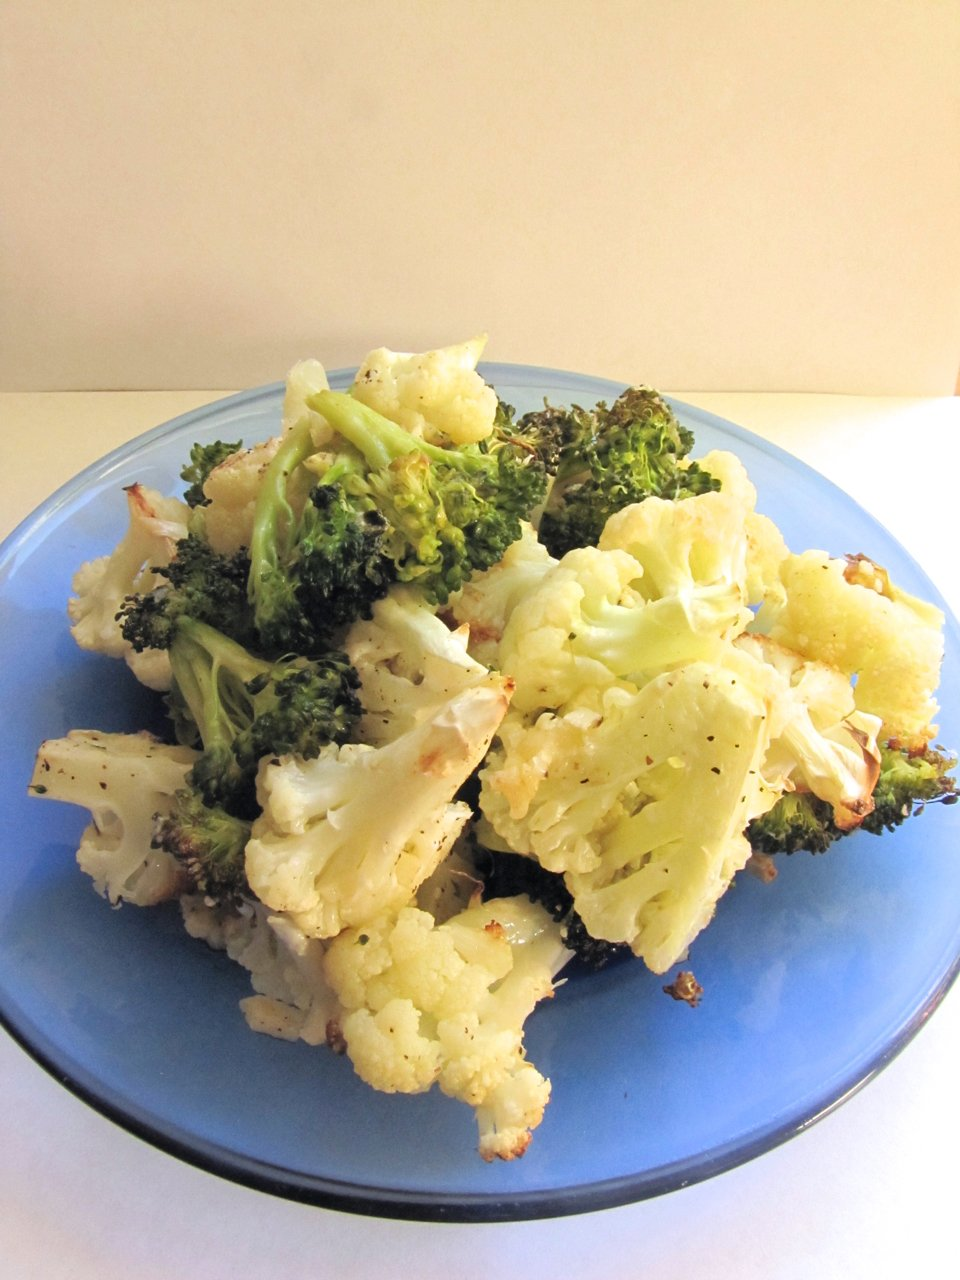 Roasted Garlic-Parmesan Cauliflower and Broccoli